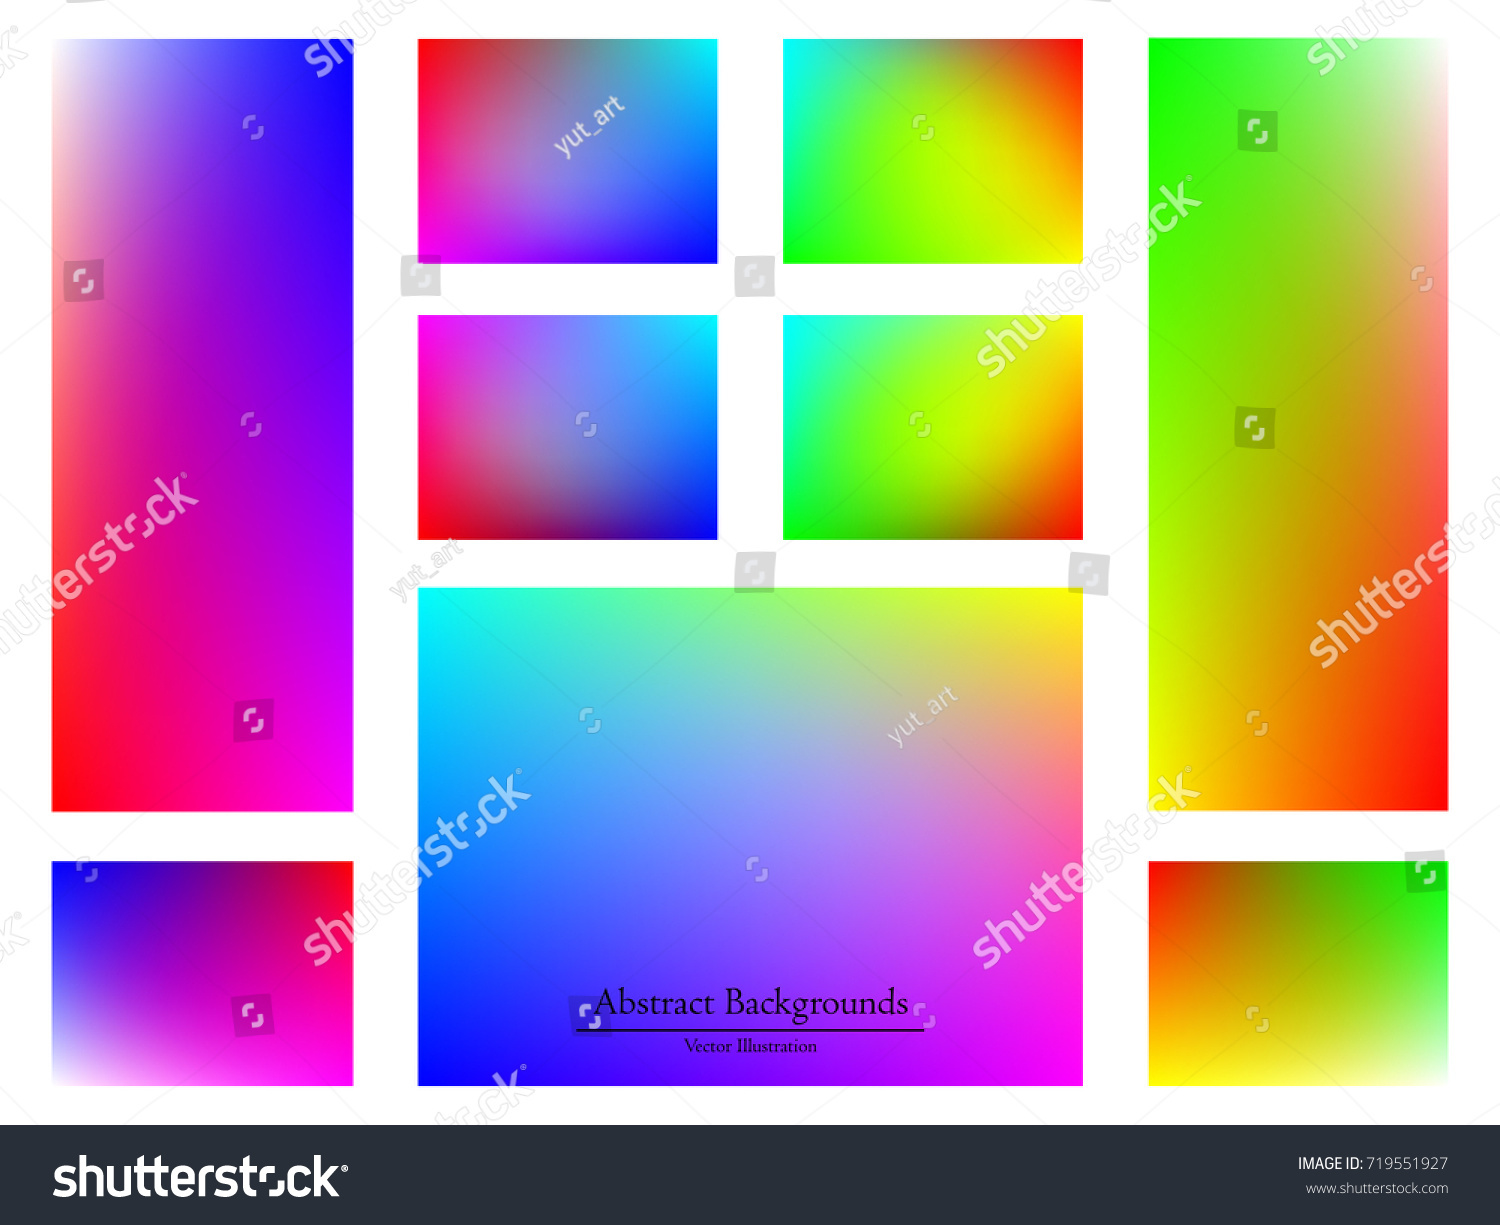 Pie chart color scheme choice image free any chart examples pie chart color scheme gallery free any chart examples pie chart color scheme gallery free any nvjuhfo Images